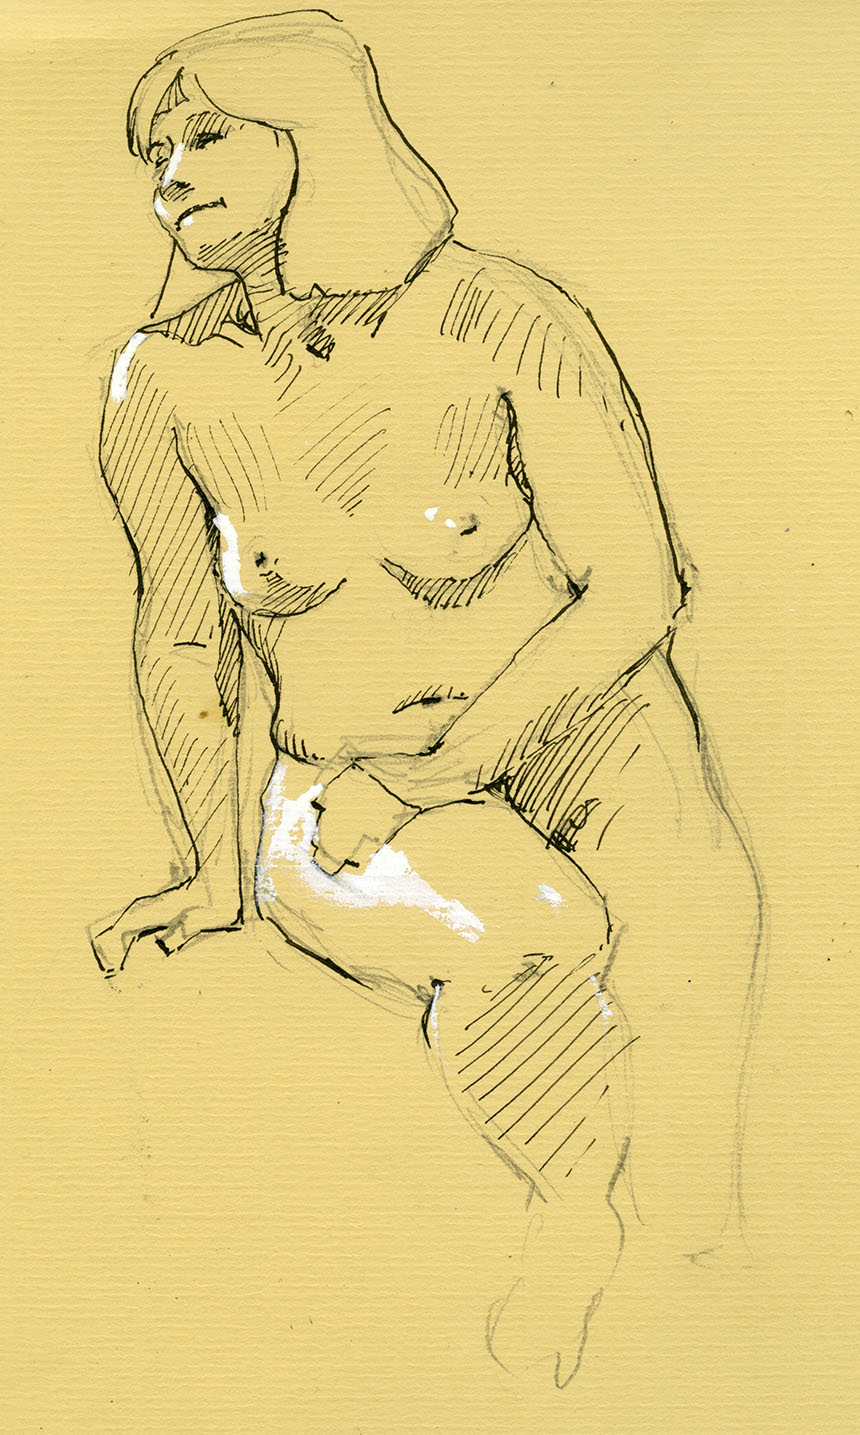 pen drawing, life drawing, figure